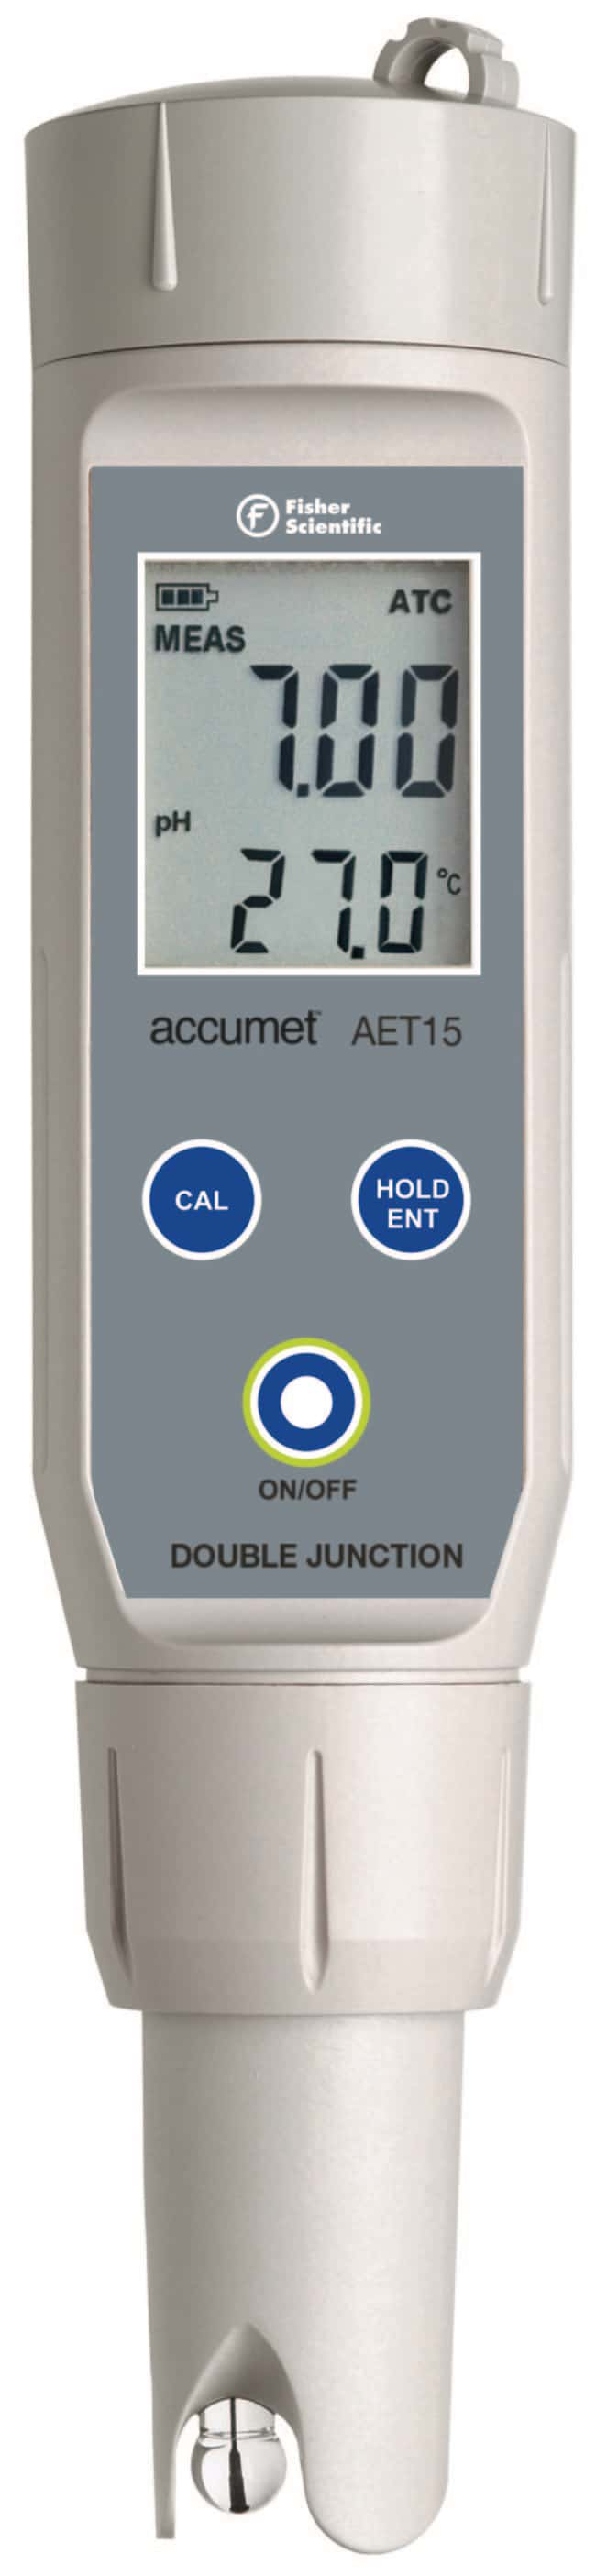 accumet accumet™ AET15 pH Tester